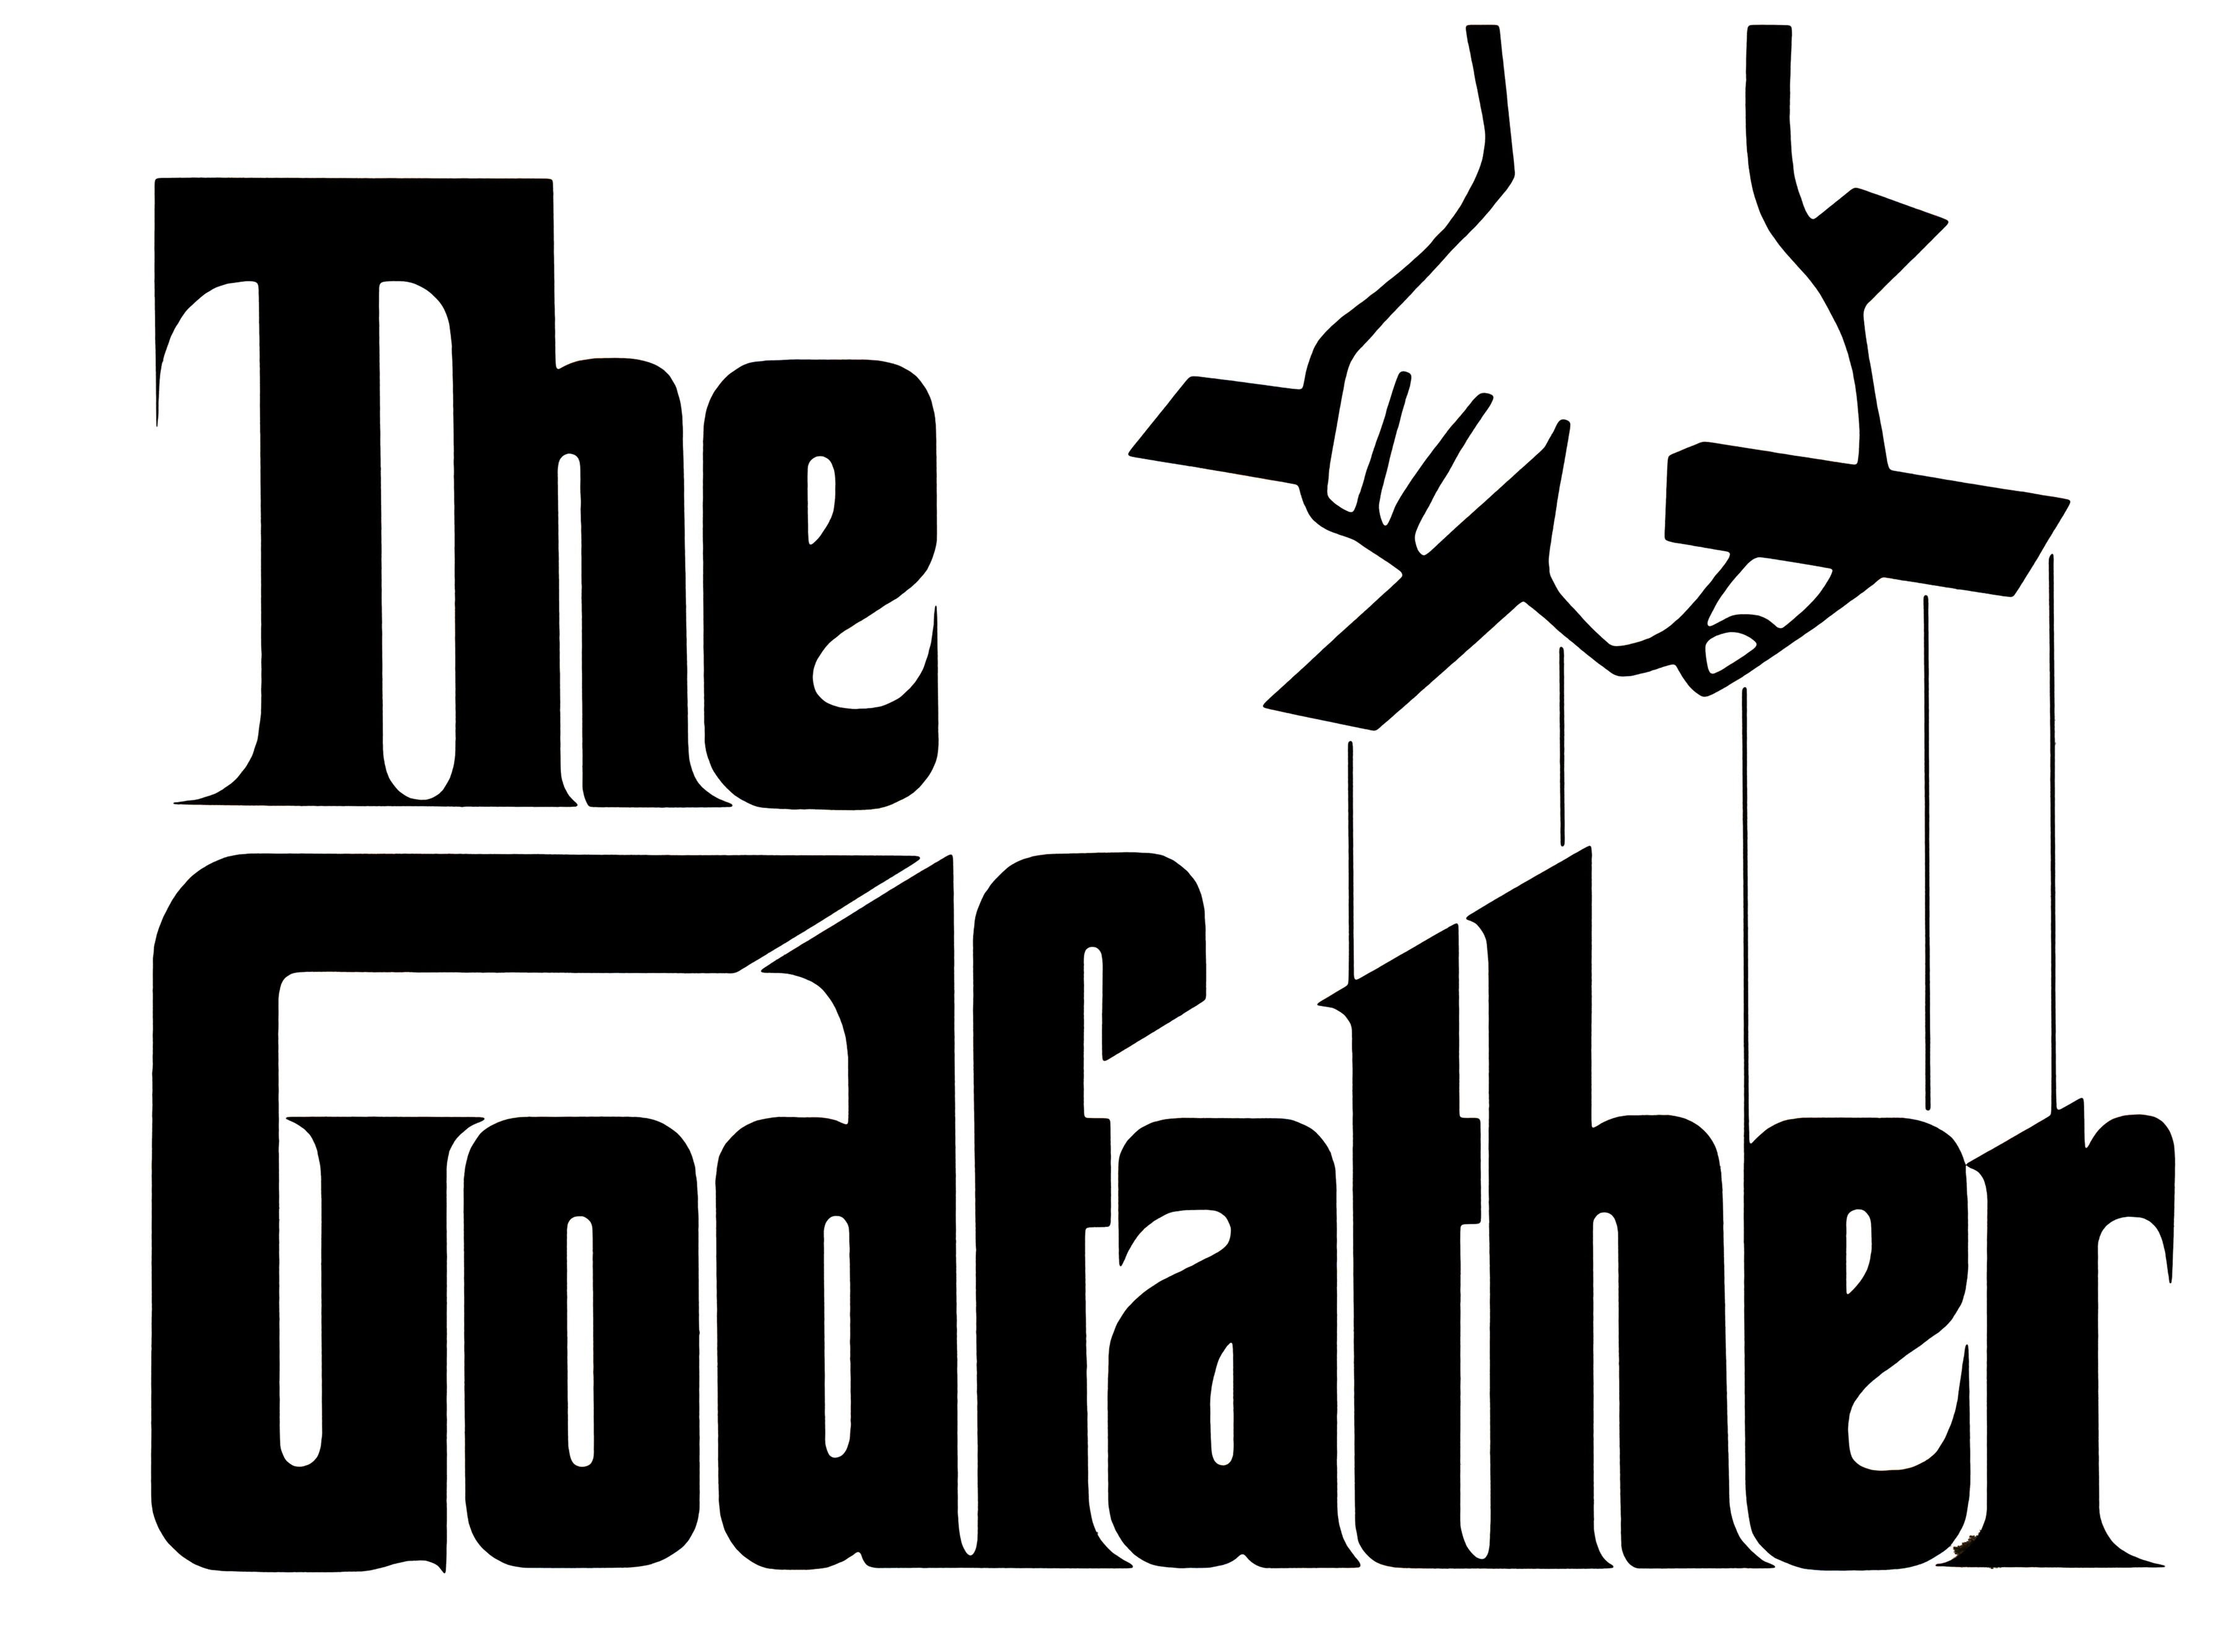 https://0901.nccdn.net/4_2/000/000/056/7dc/The-Godfather-Logo-1-3600x2670.jpg